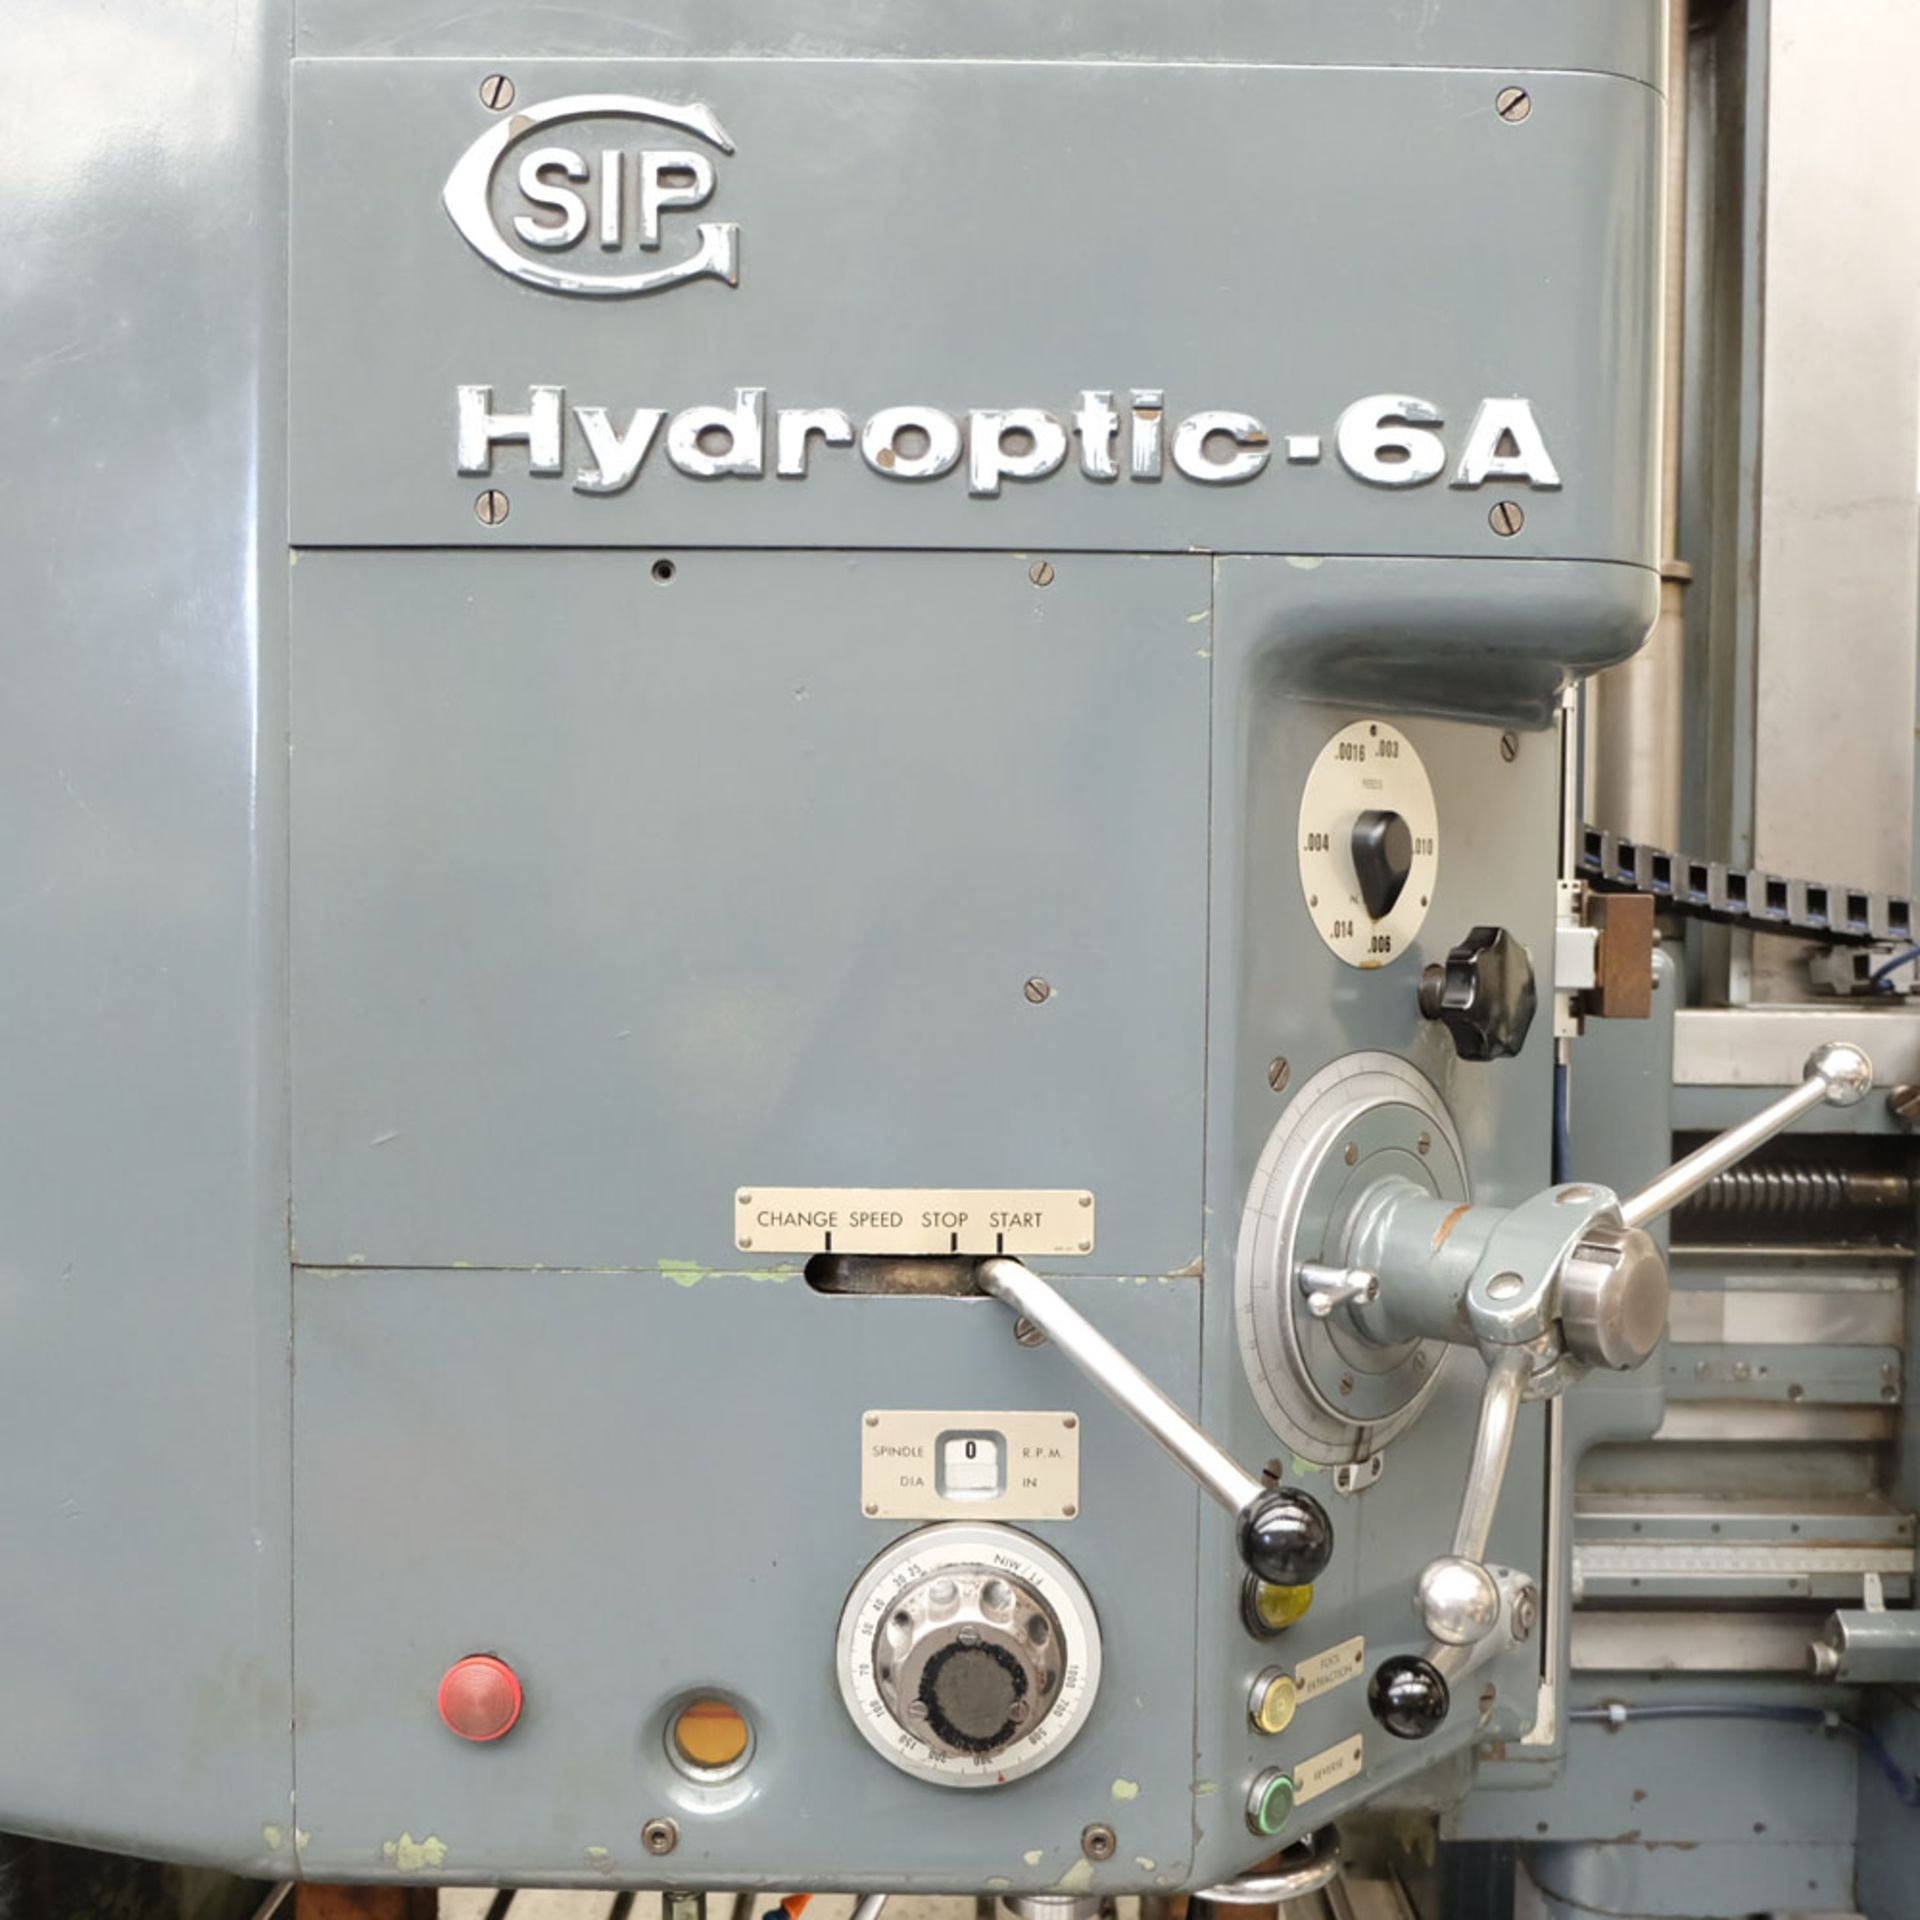 SIP Genevoise Hydroptic - 6A High Precision Jig Boring And Milling Machine. - Image 4 of 25